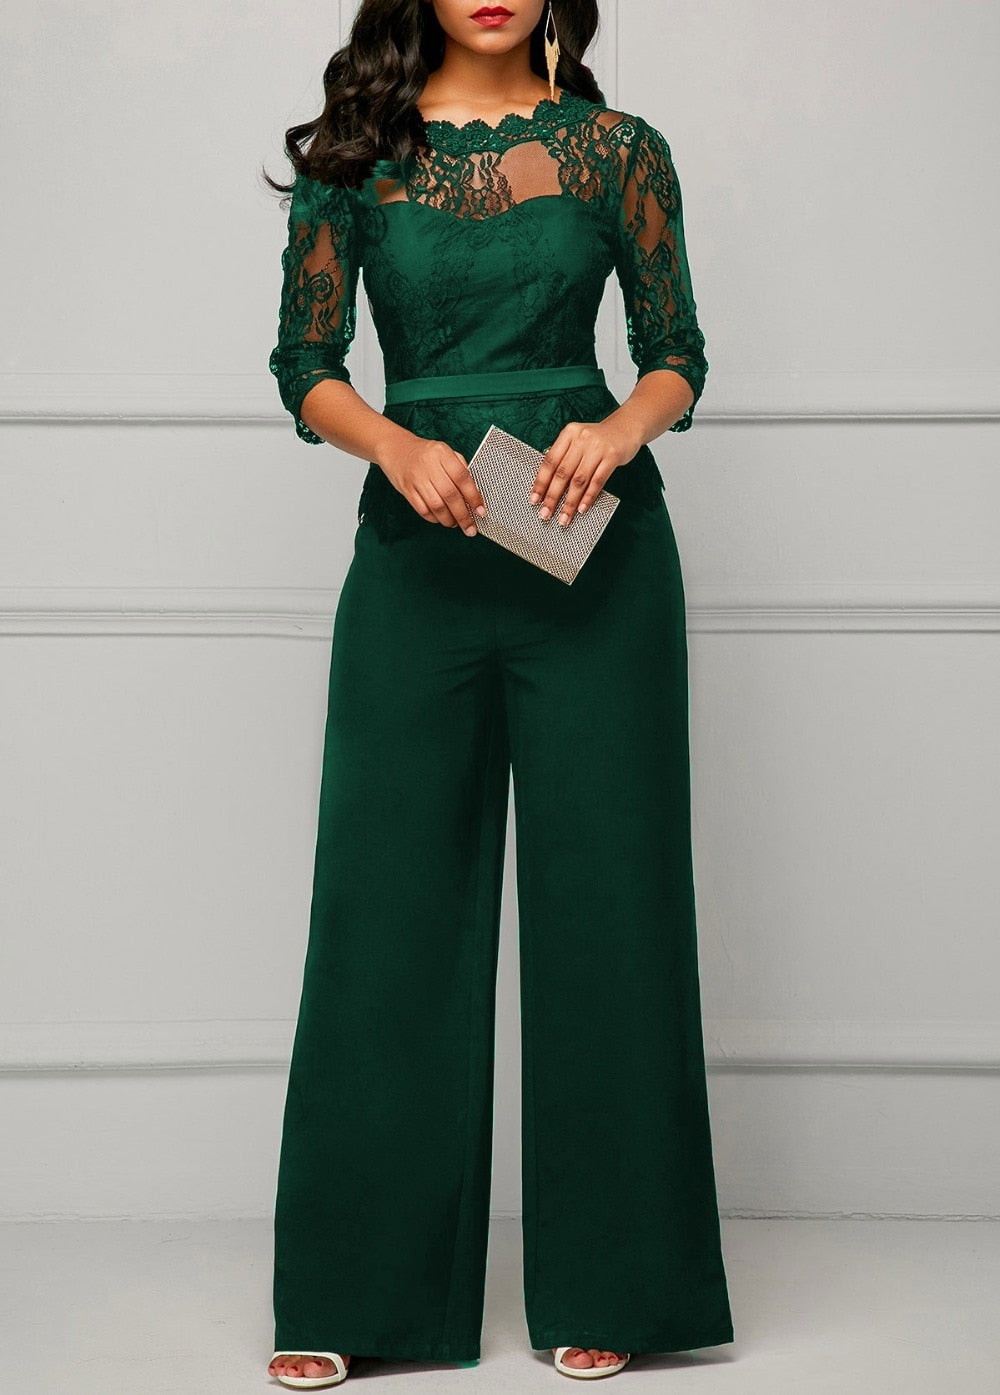 Casual Lace Wide Leg Pants Rompers Jumpsuit